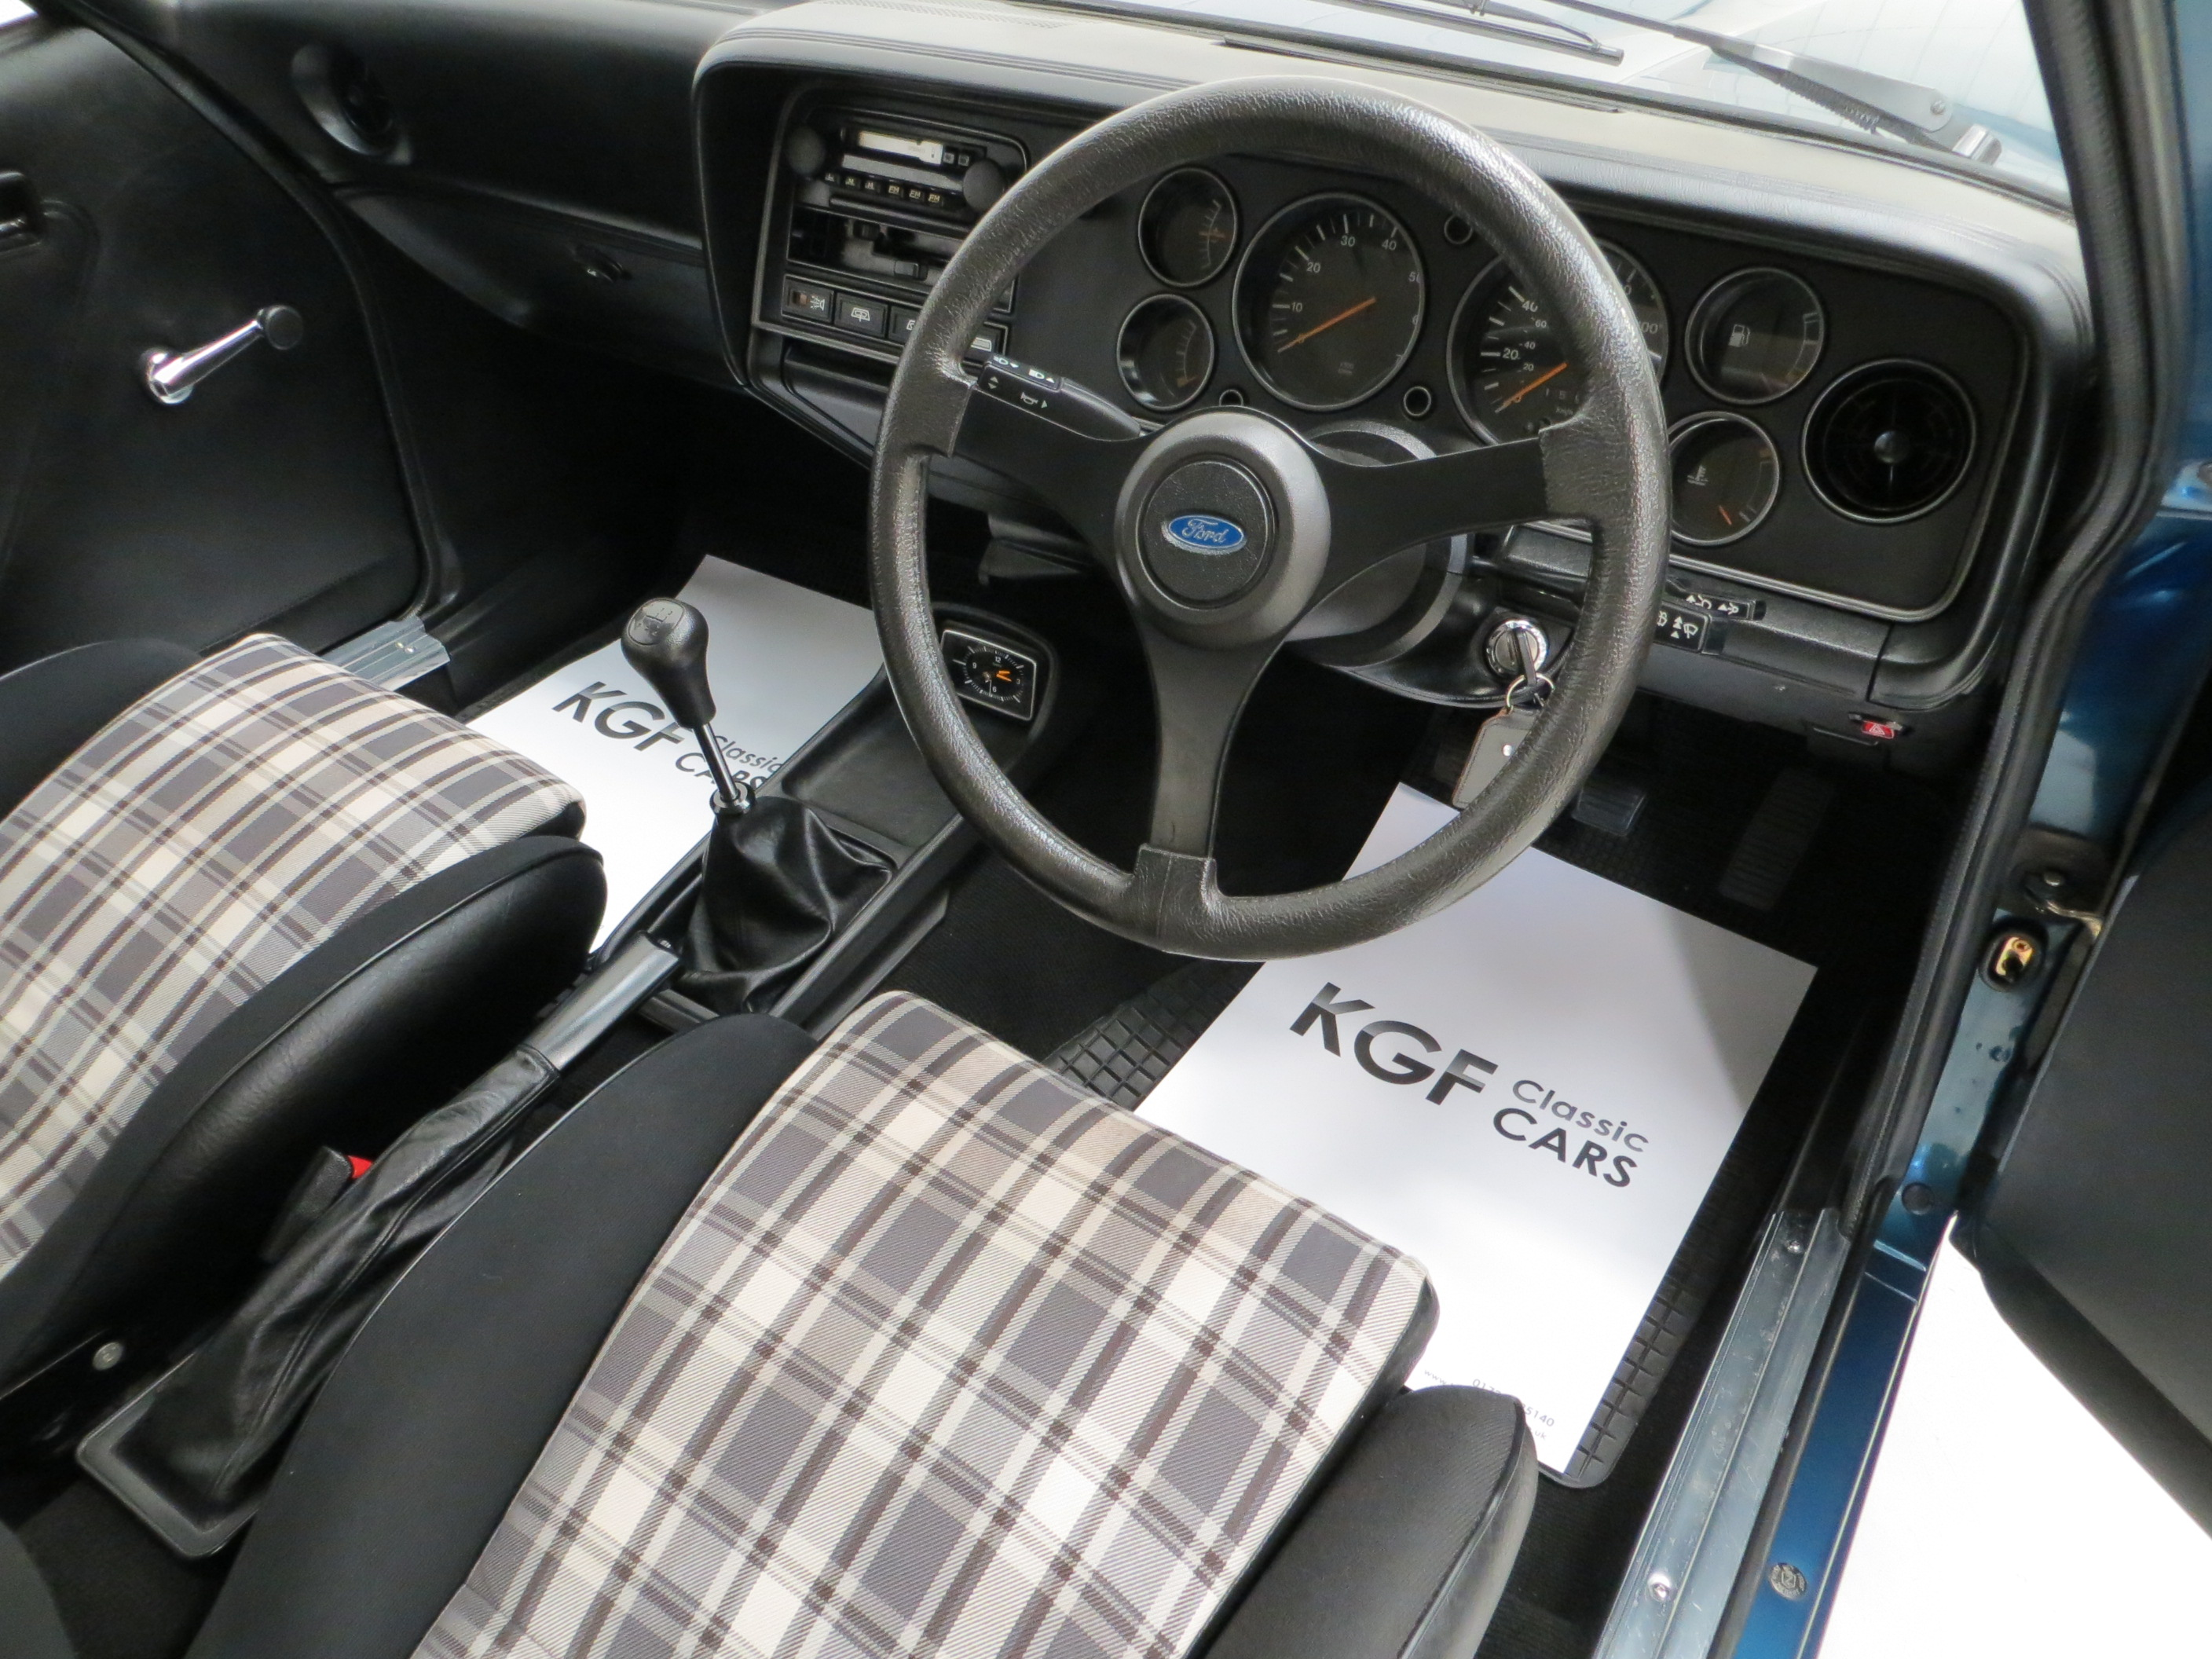 An Incredible Ford Capri 30s With 28980 Miles Sold Pe1 Retro 1980 Interior By Kgf Classic Cars On Flickr